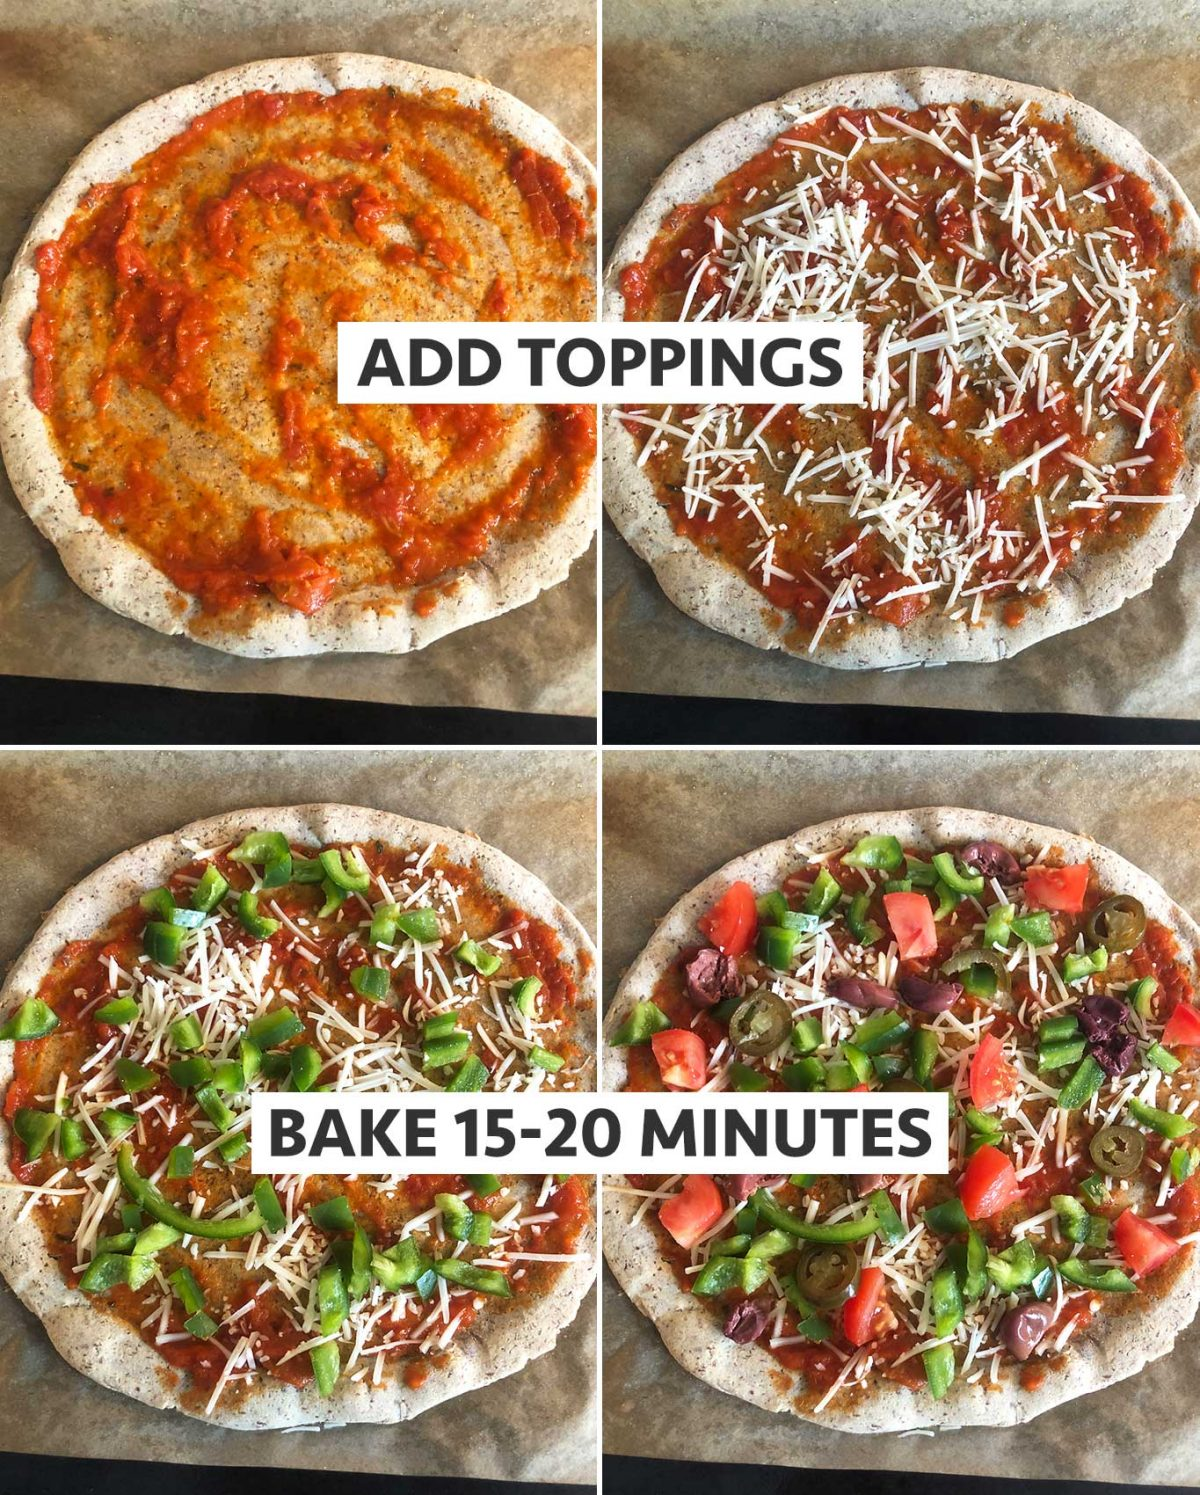 Plant-based/vegan? No problem! Add your toppings of choice!